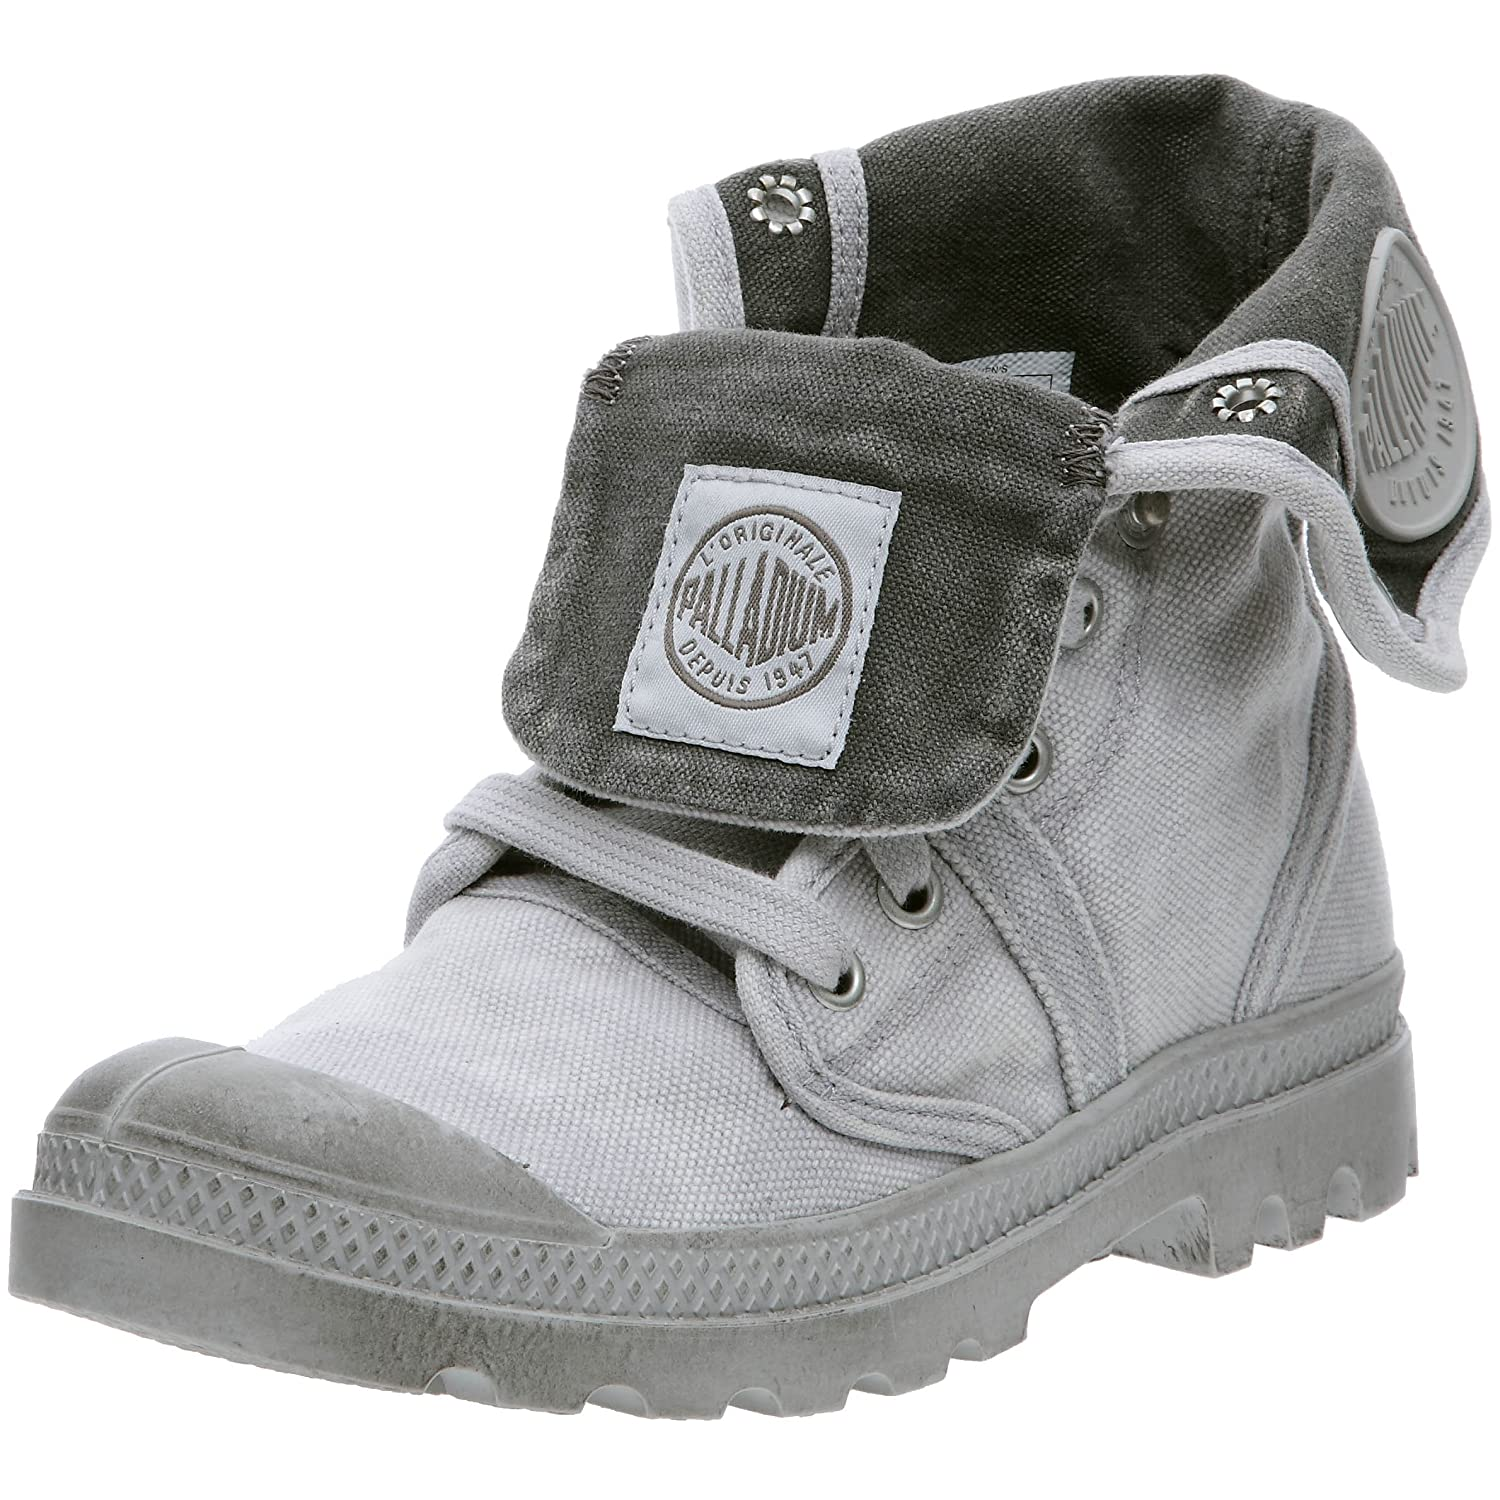 Palladium Us Baggy B01LWDE87D W Us 19004 F, Baskets Hautes Femme Gris (Vapor/ Metal 869) ff0717b - piero.space